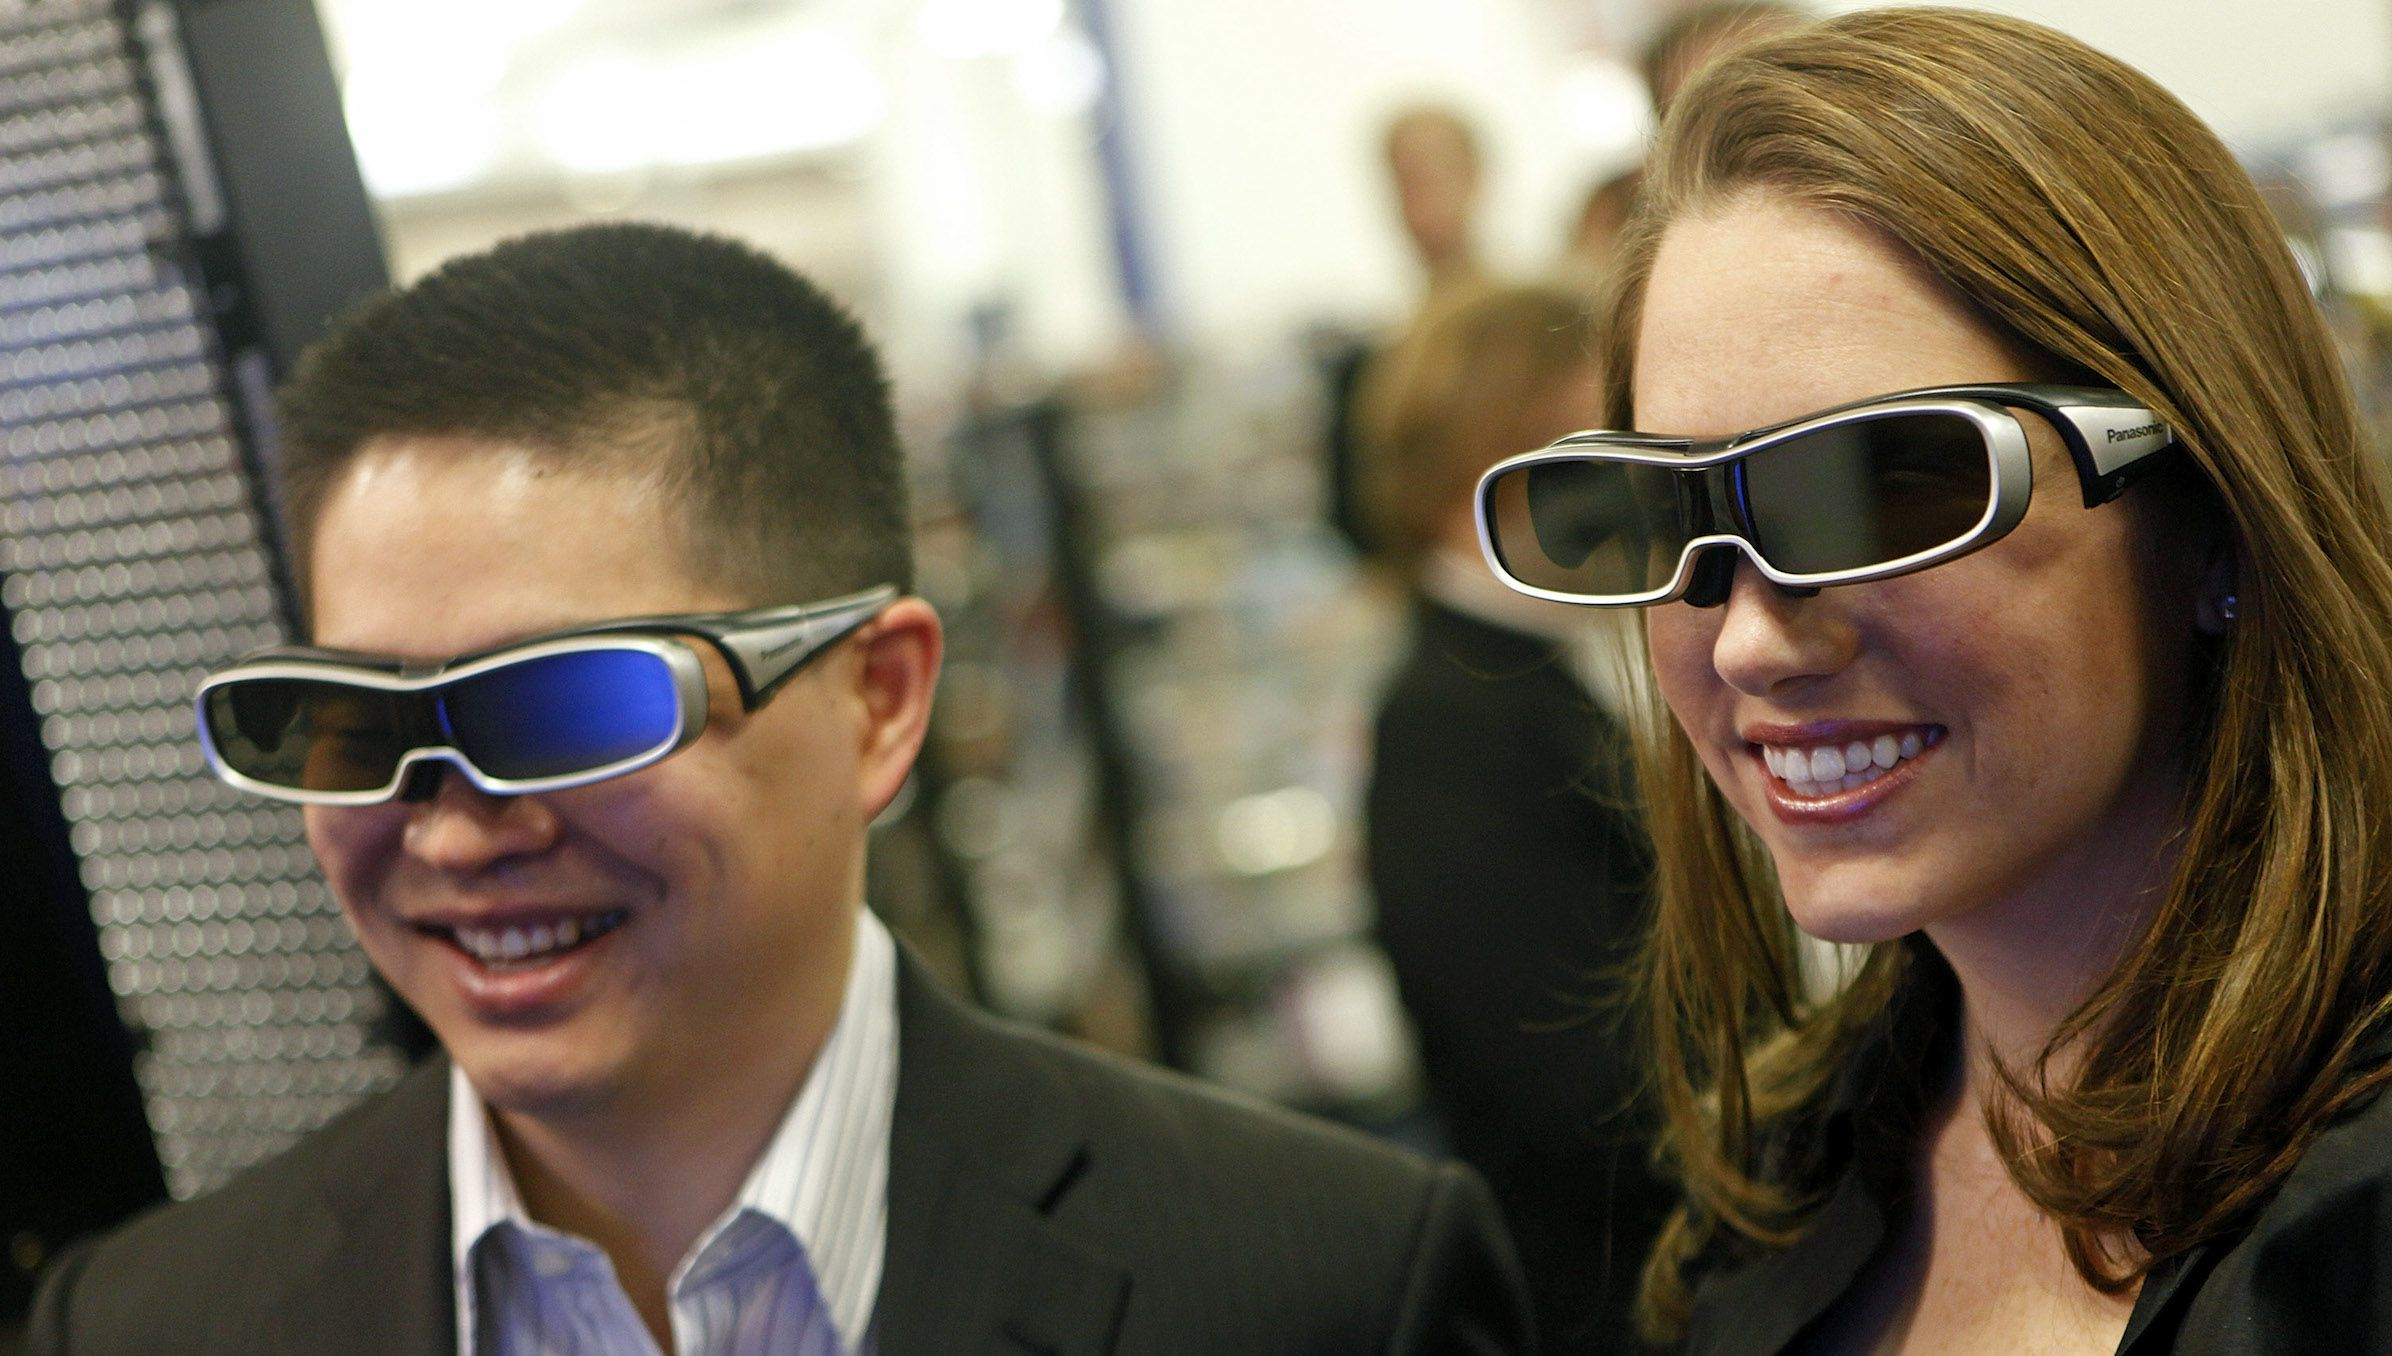 Brad, left, and Ashley Katsuyama, sample Panasonic's 3D technology before becoming the world's first consumers to purchase a complete 3D home theater system at Best Buy Wednesday March 10, 2010 in New York. (David Goldman/AP Images for Best Buy )